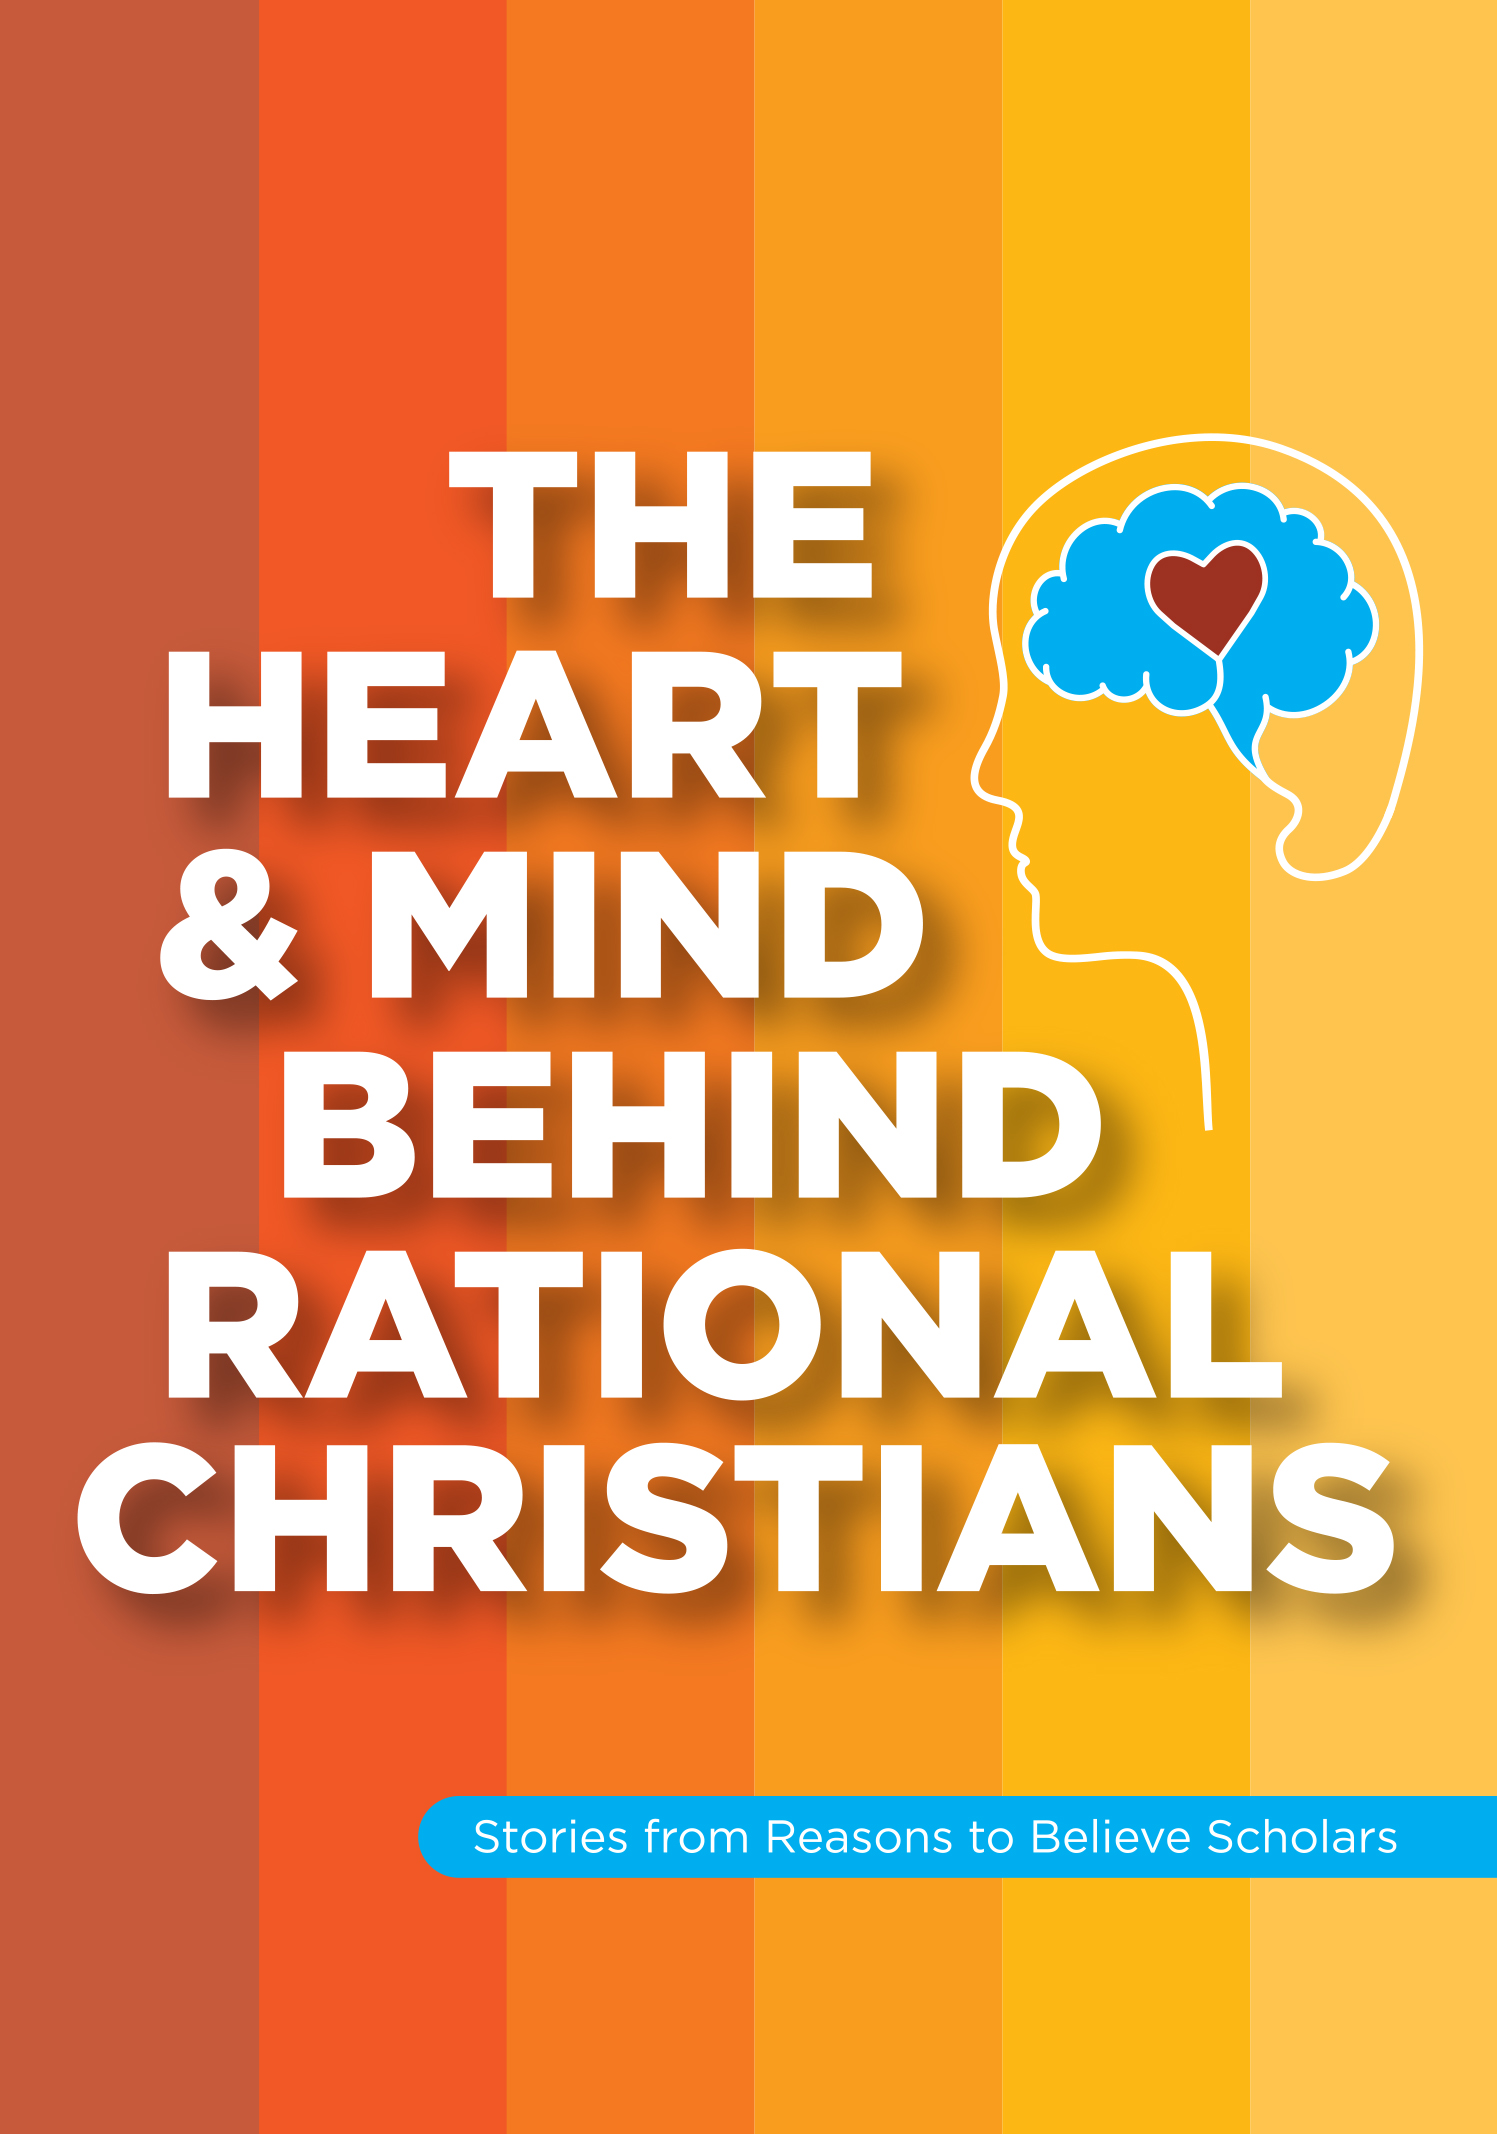 The Heart & Mind Behind Rational Christians Image